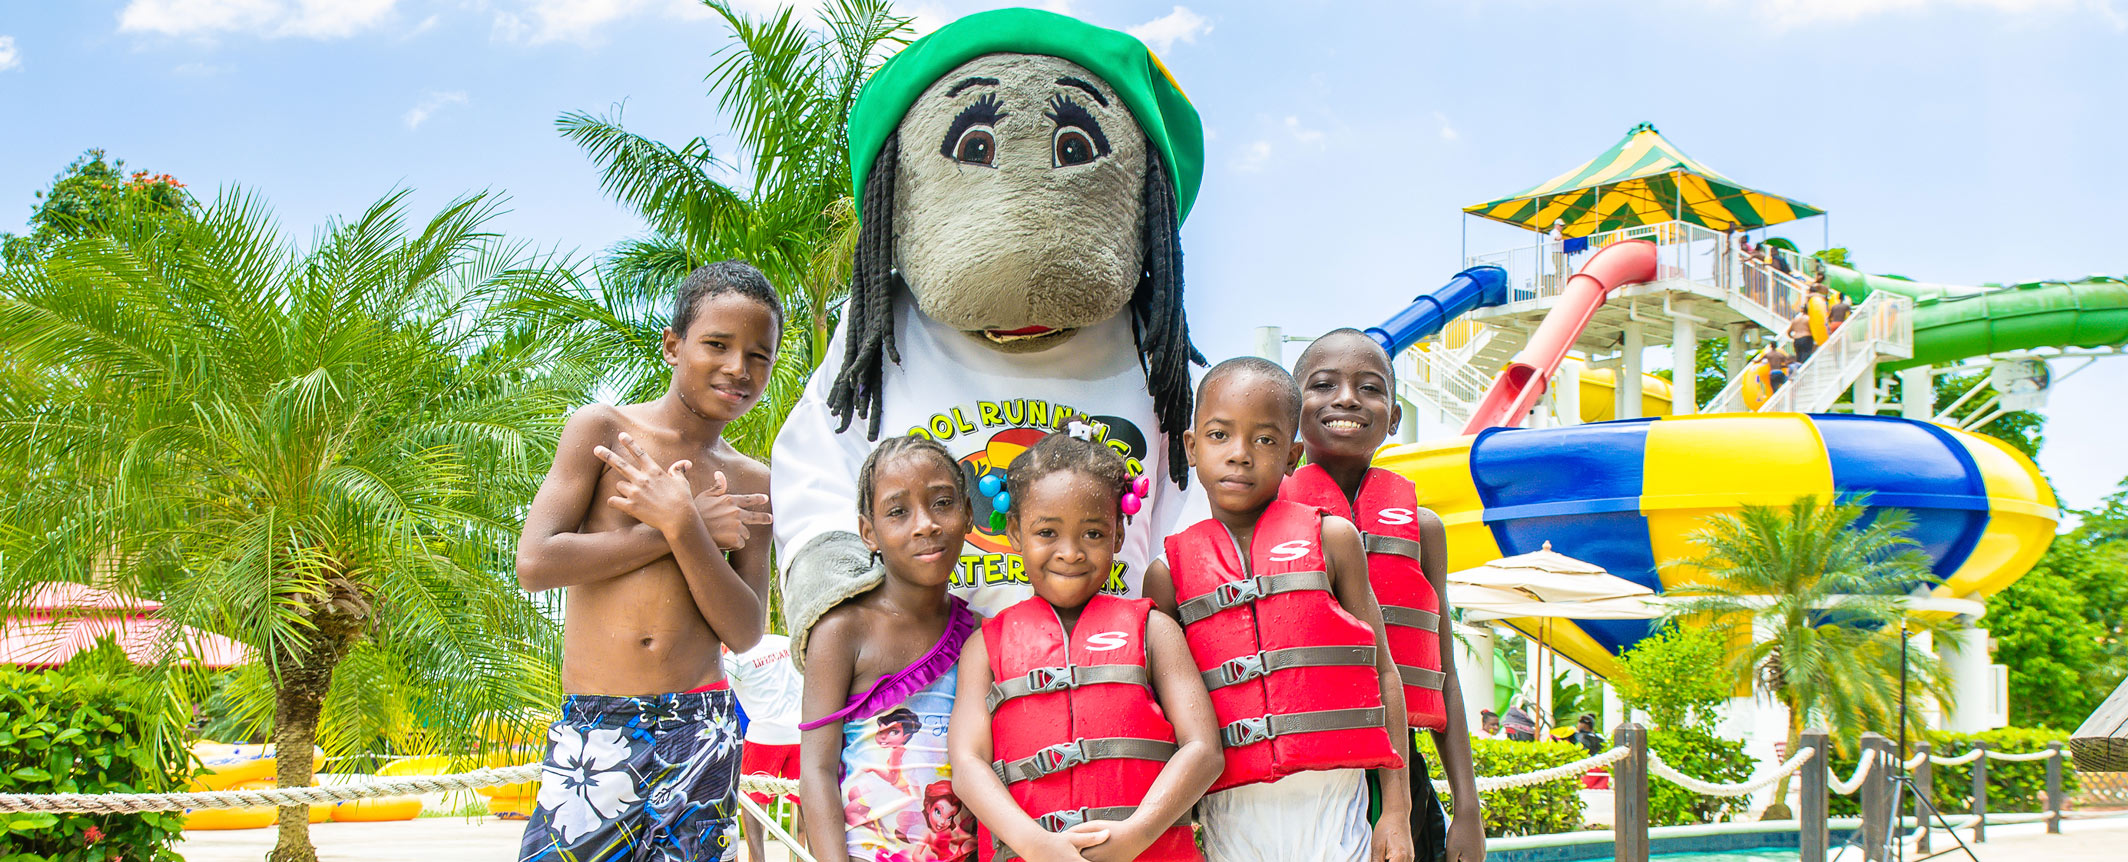 Kool runnings adventure park jamaica running adventure park view kool publicscrutiny Images